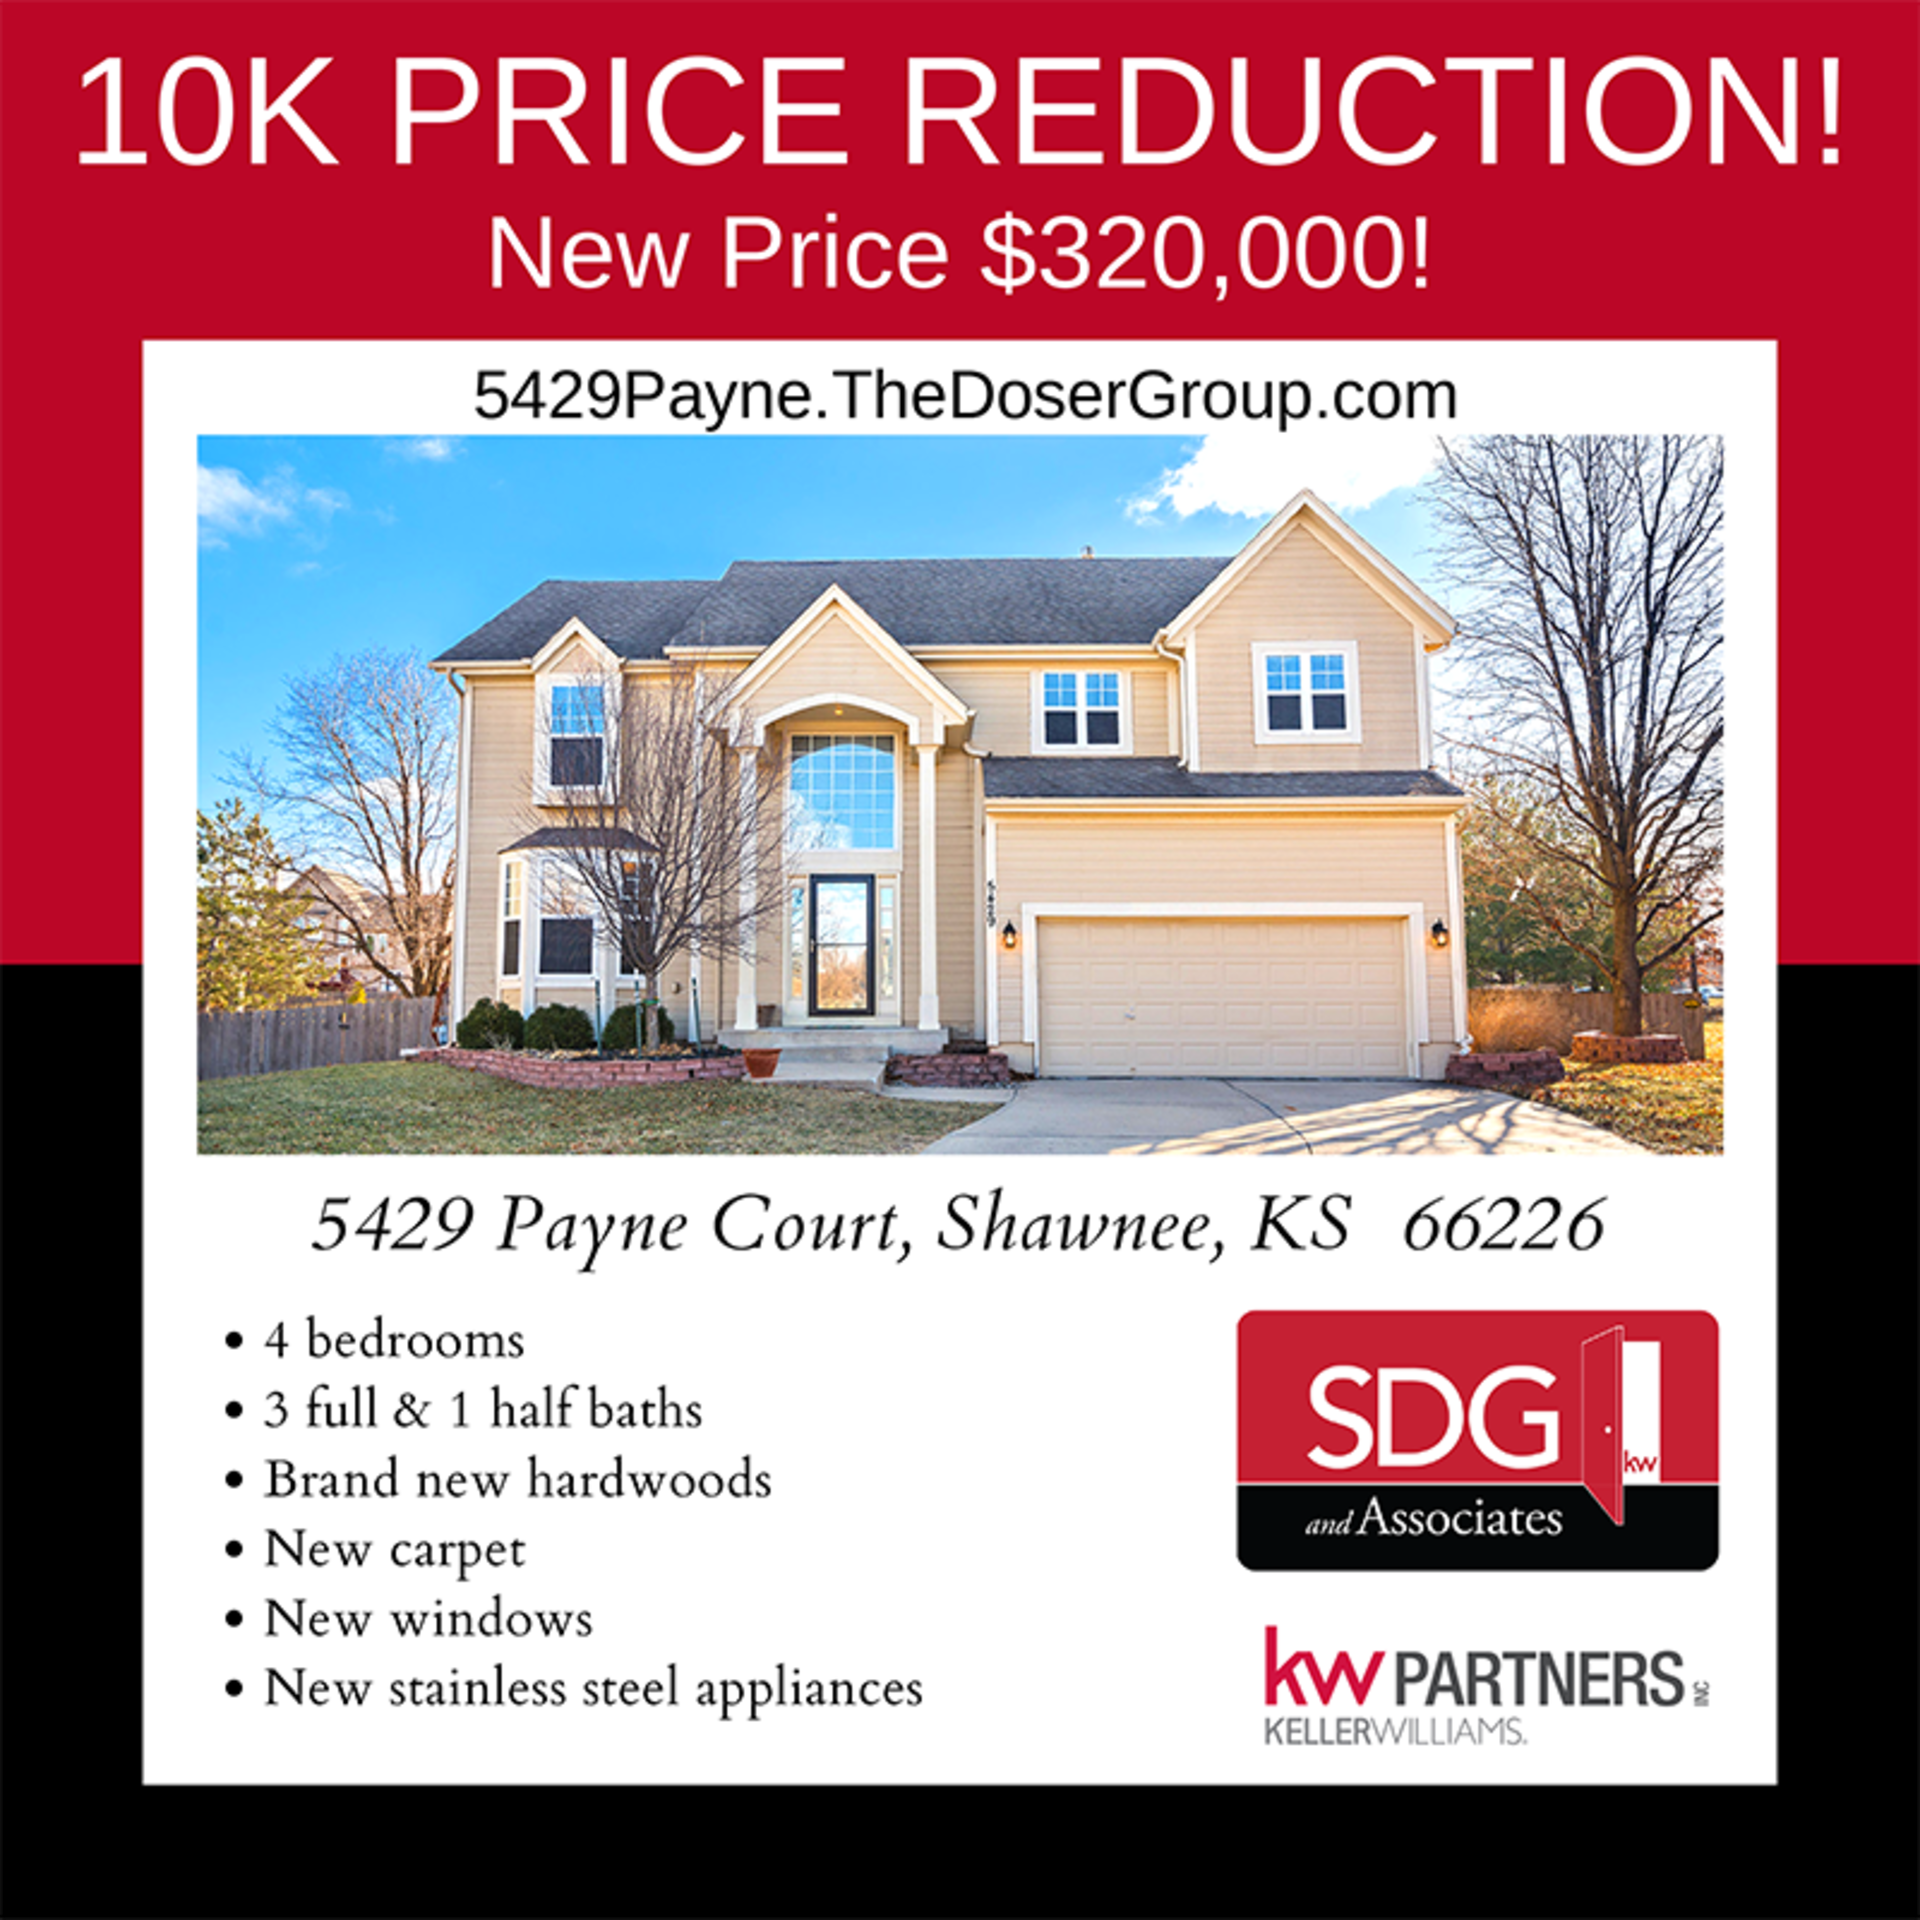 10K PRICE REDUCTION! Gorgeous Home on Cul-de-Sac!